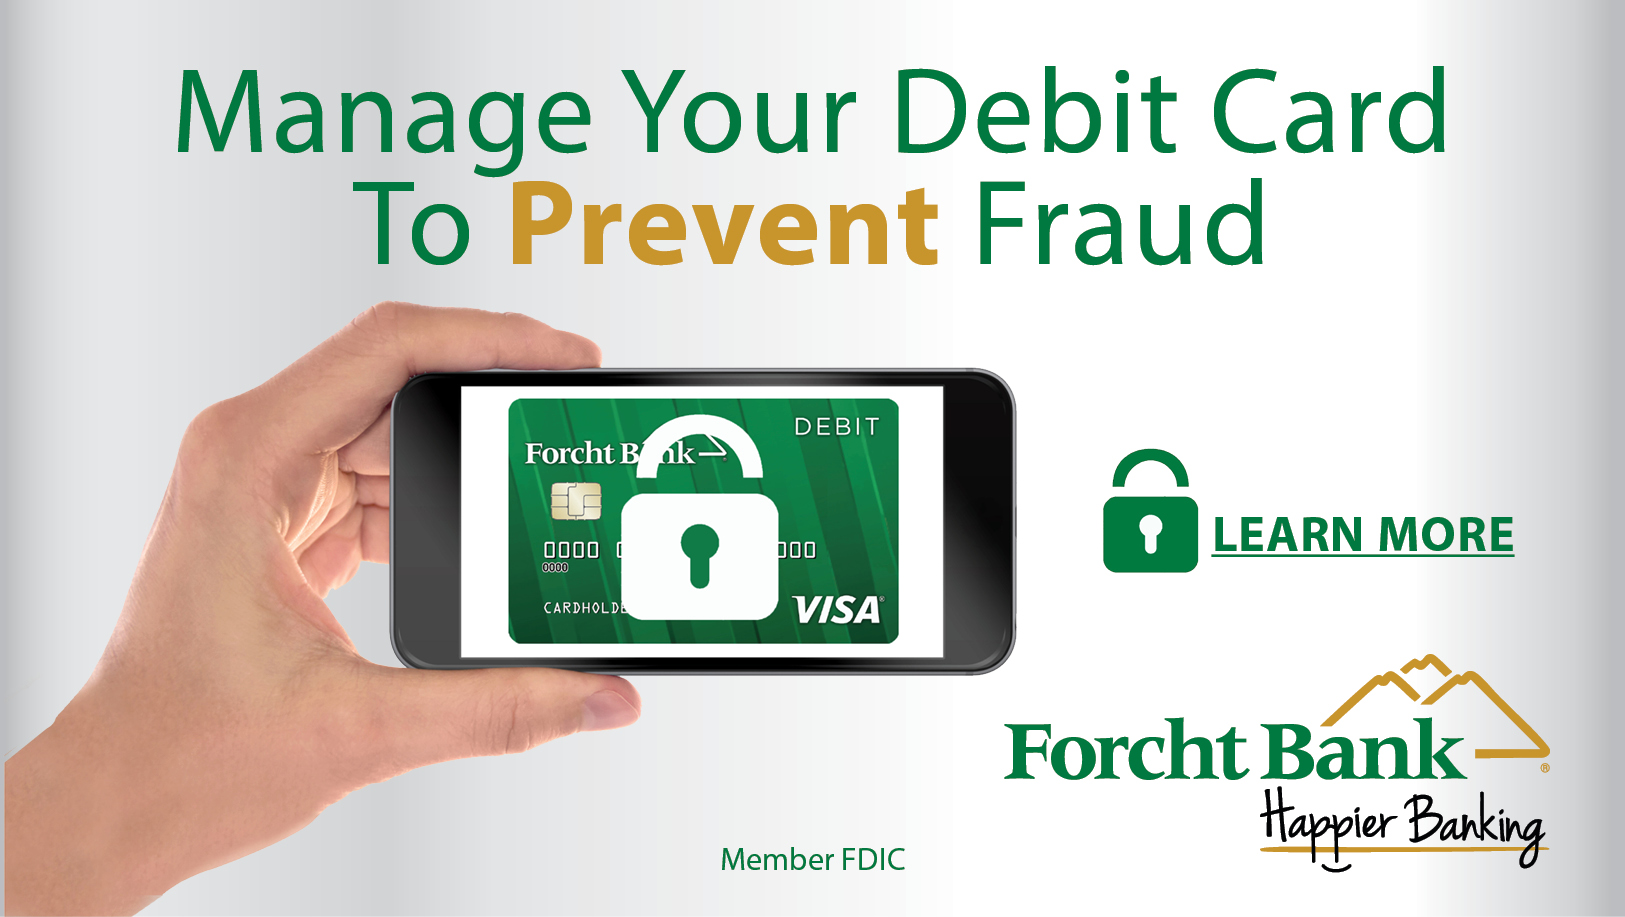 Feature: https://www.forchtbank.com/bank/online-banking